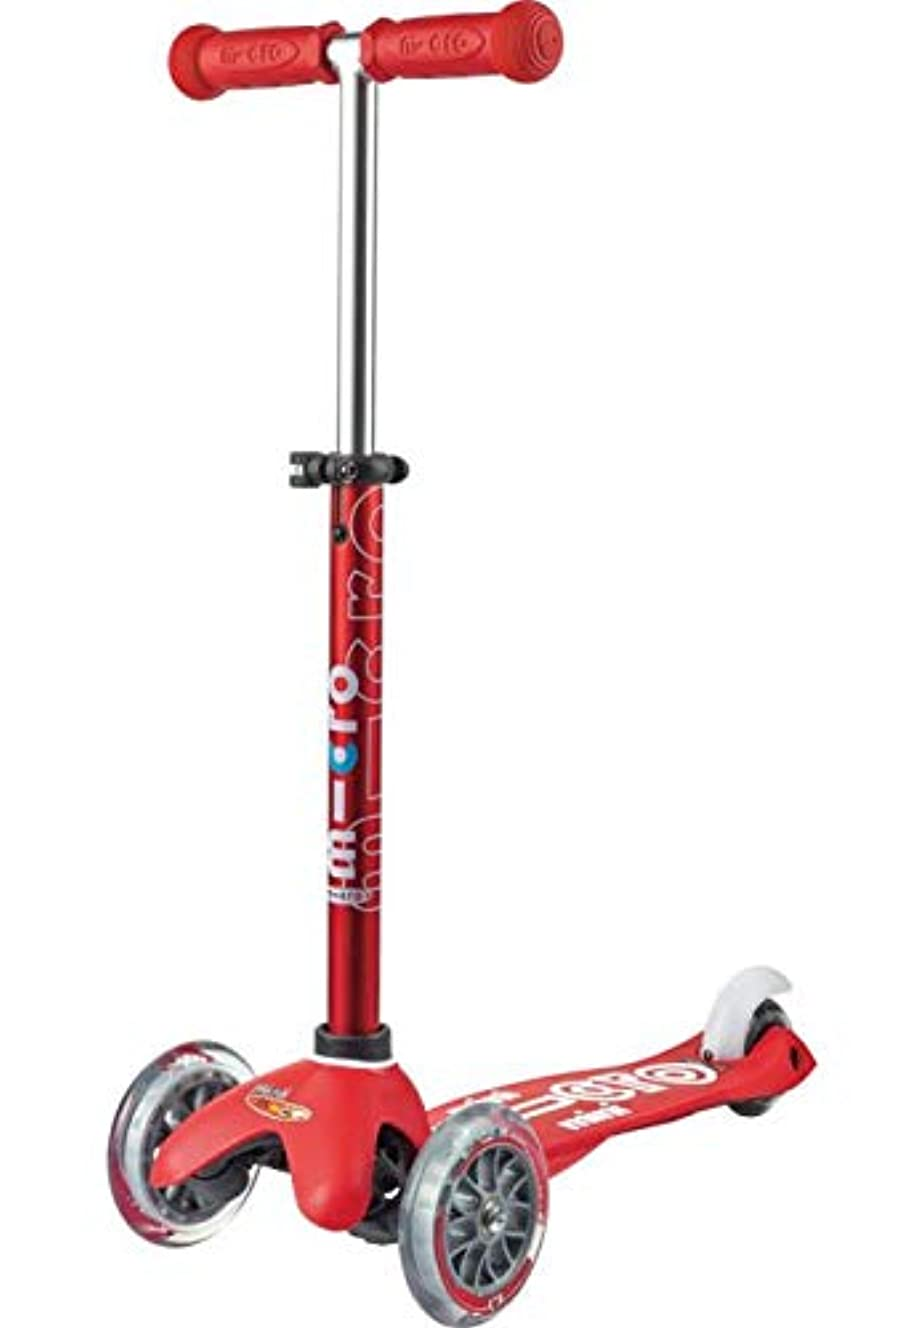 Mini Deluxe | 3-Wheeled, Lean-to-Steer, Swiss-Designed Micro Scooter for Kids | Ages 2-5